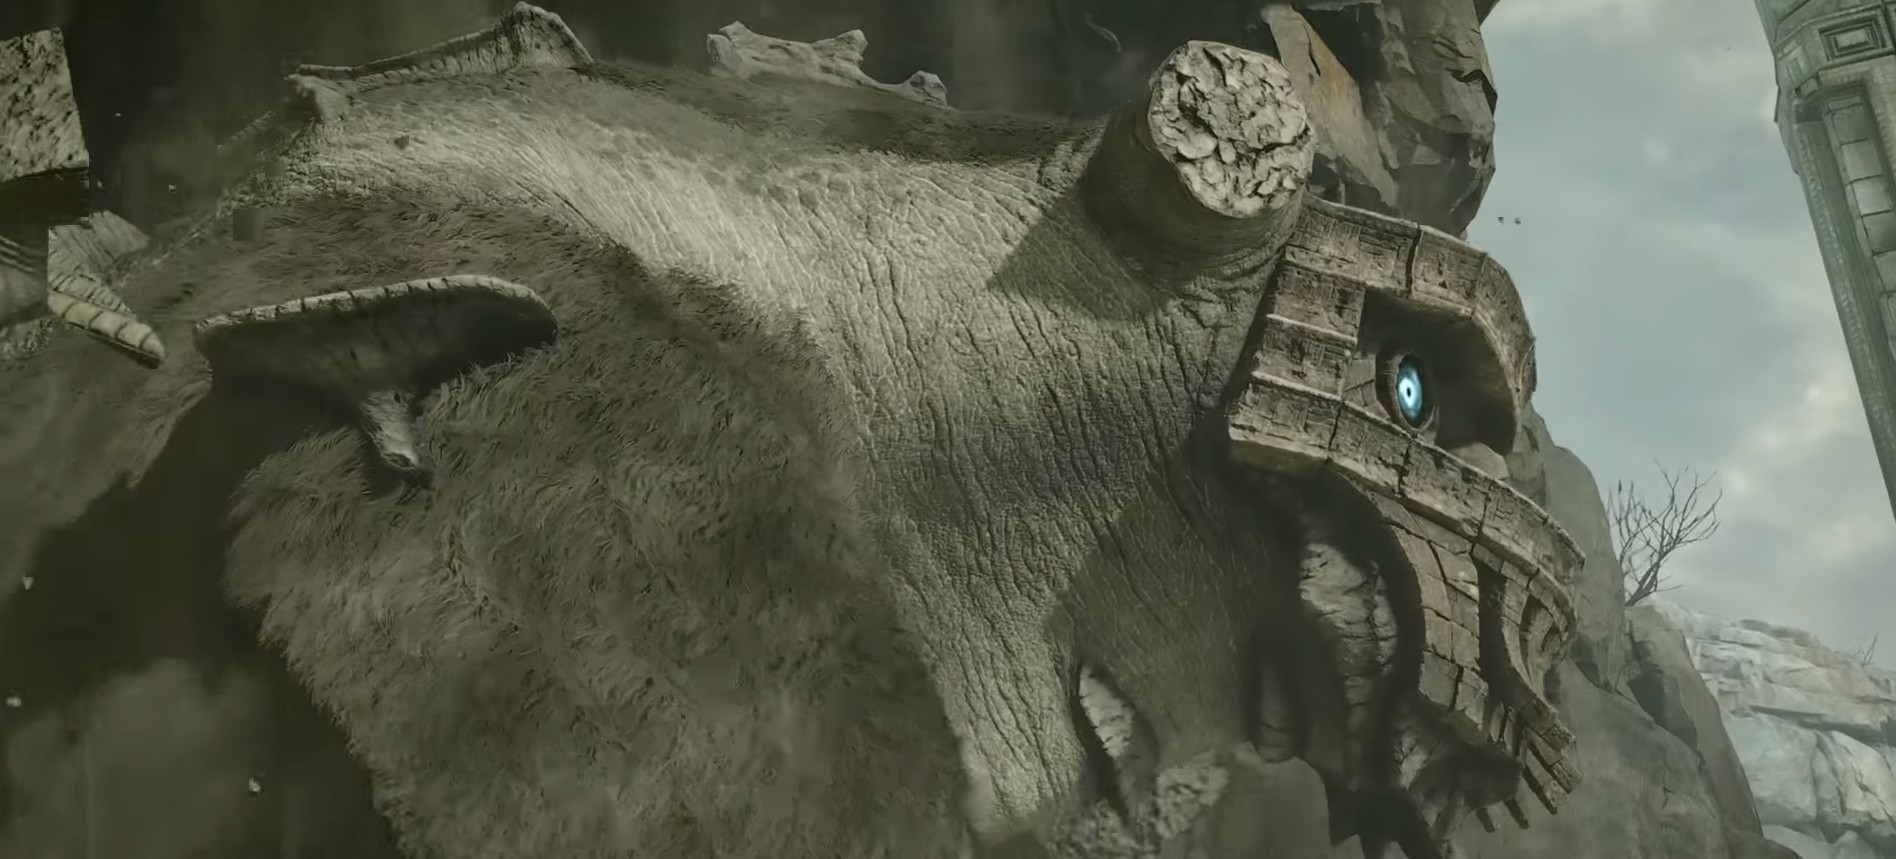 There Are Multiple Stages To Killing Colossus 2 First Off You Need Temporarily Down Him In Order Climb Up Onto His Body As Lifts Legs